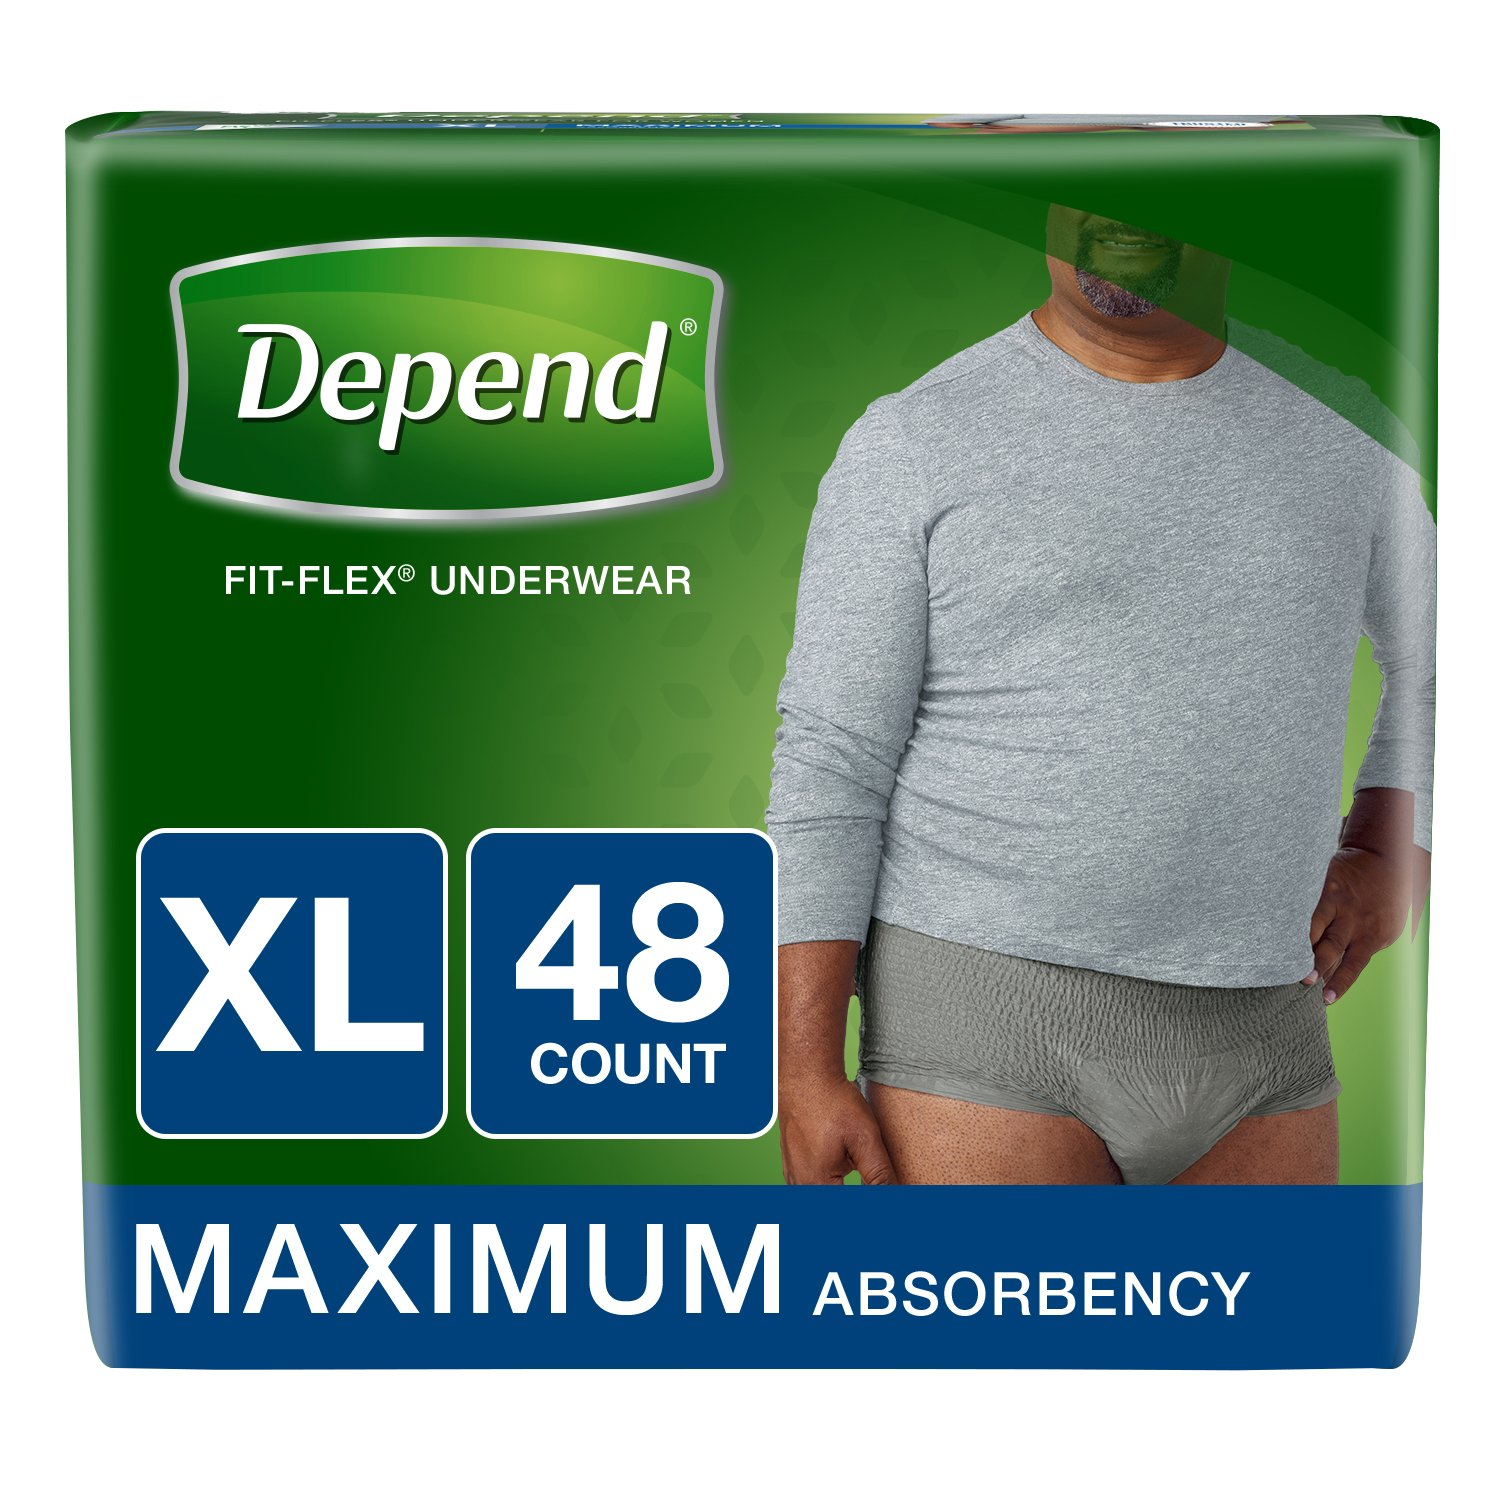 Depend FIT-Flex Incontinence Underwear for Men, Maximum Absorbency, XL, Gray, 48 Count (Packaging May Vary)